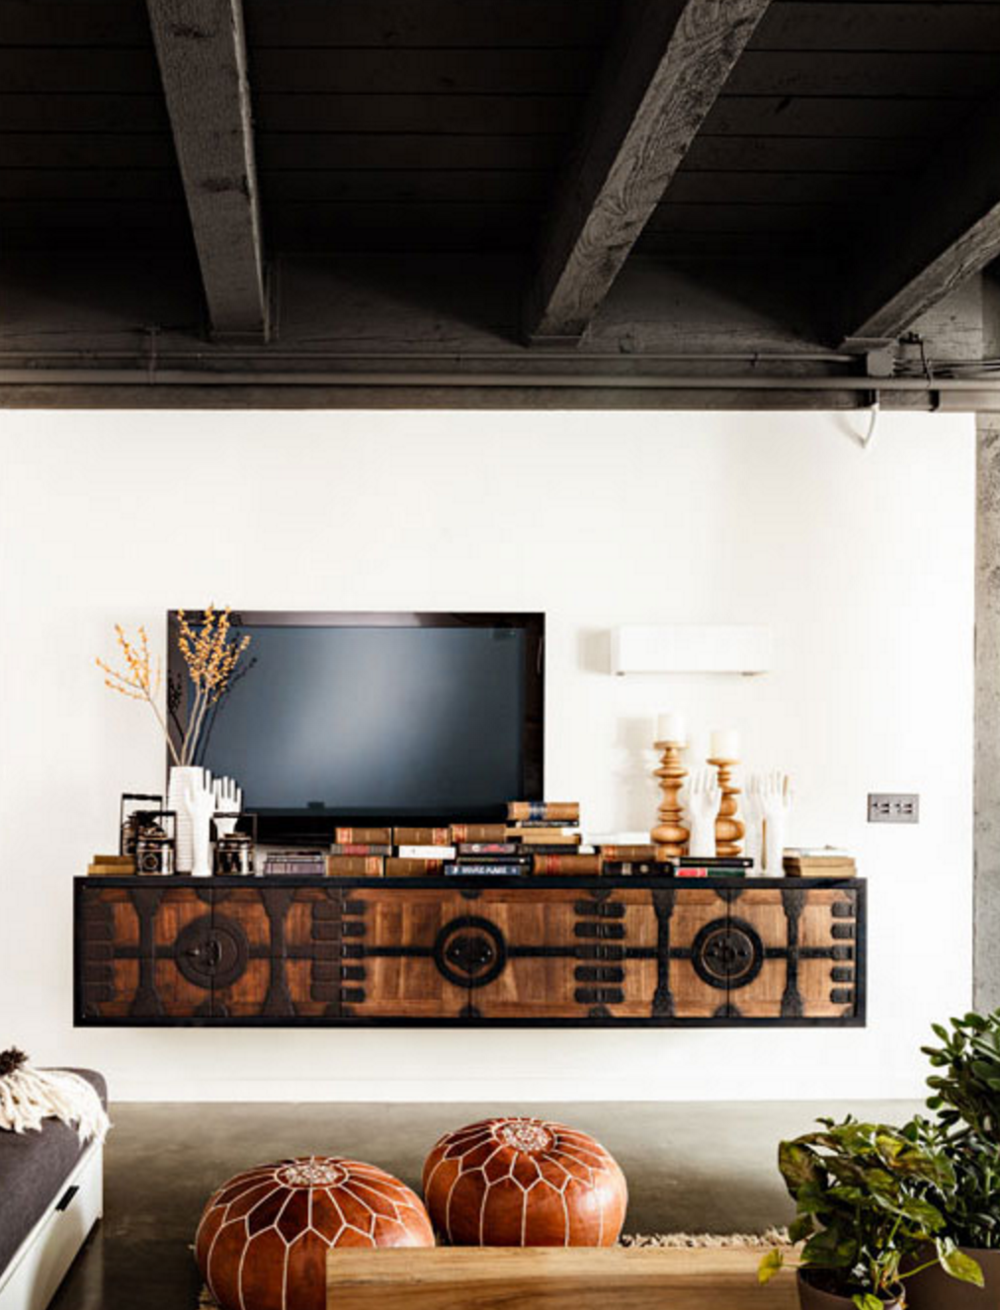 This gorgeous media center credenza pairs perfectly with the boho leather poufs.